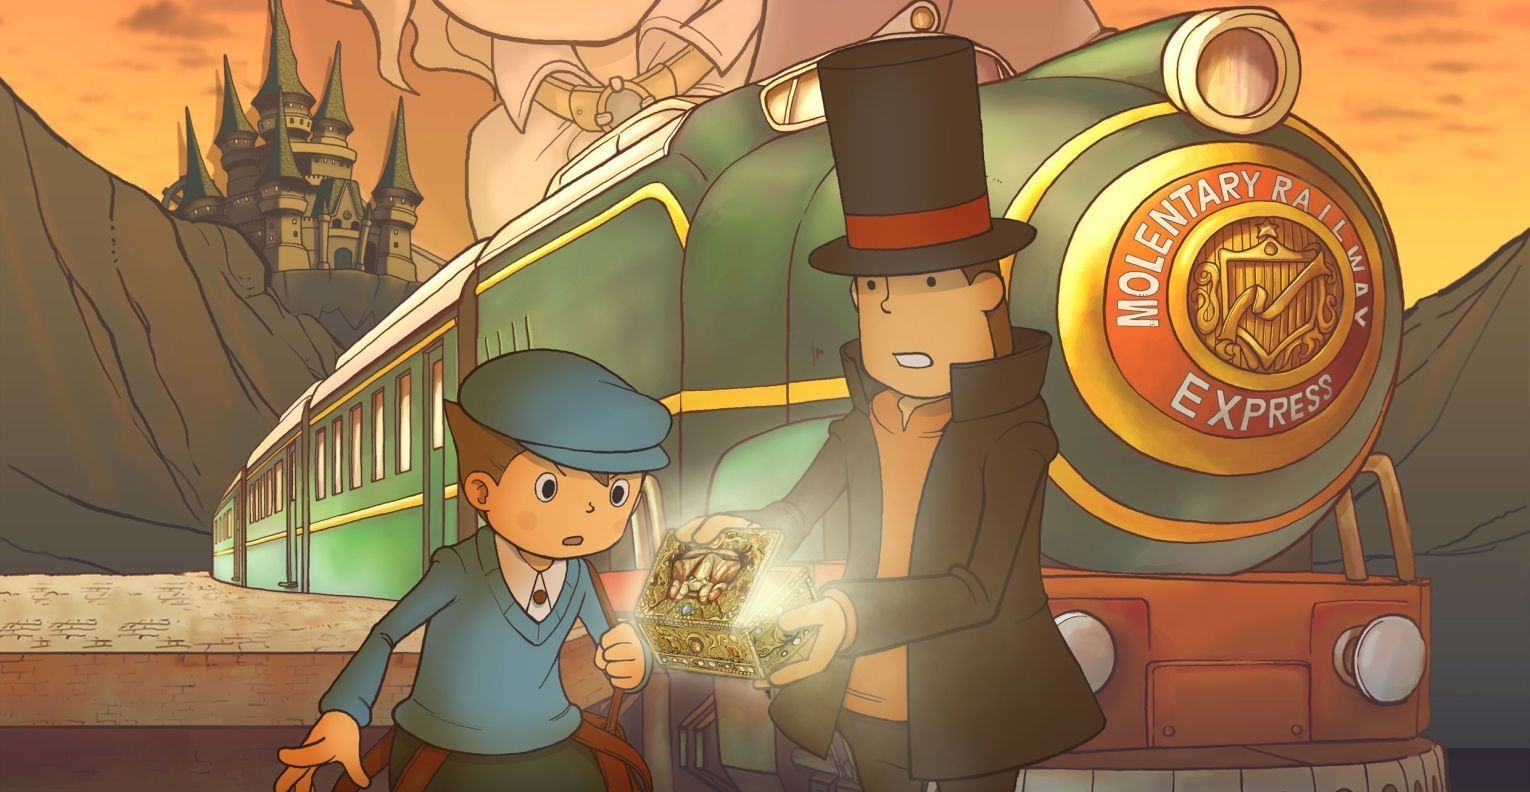 Professor Layton and the Diabolical Box trailer makes me yearn for a Switch port screenshot